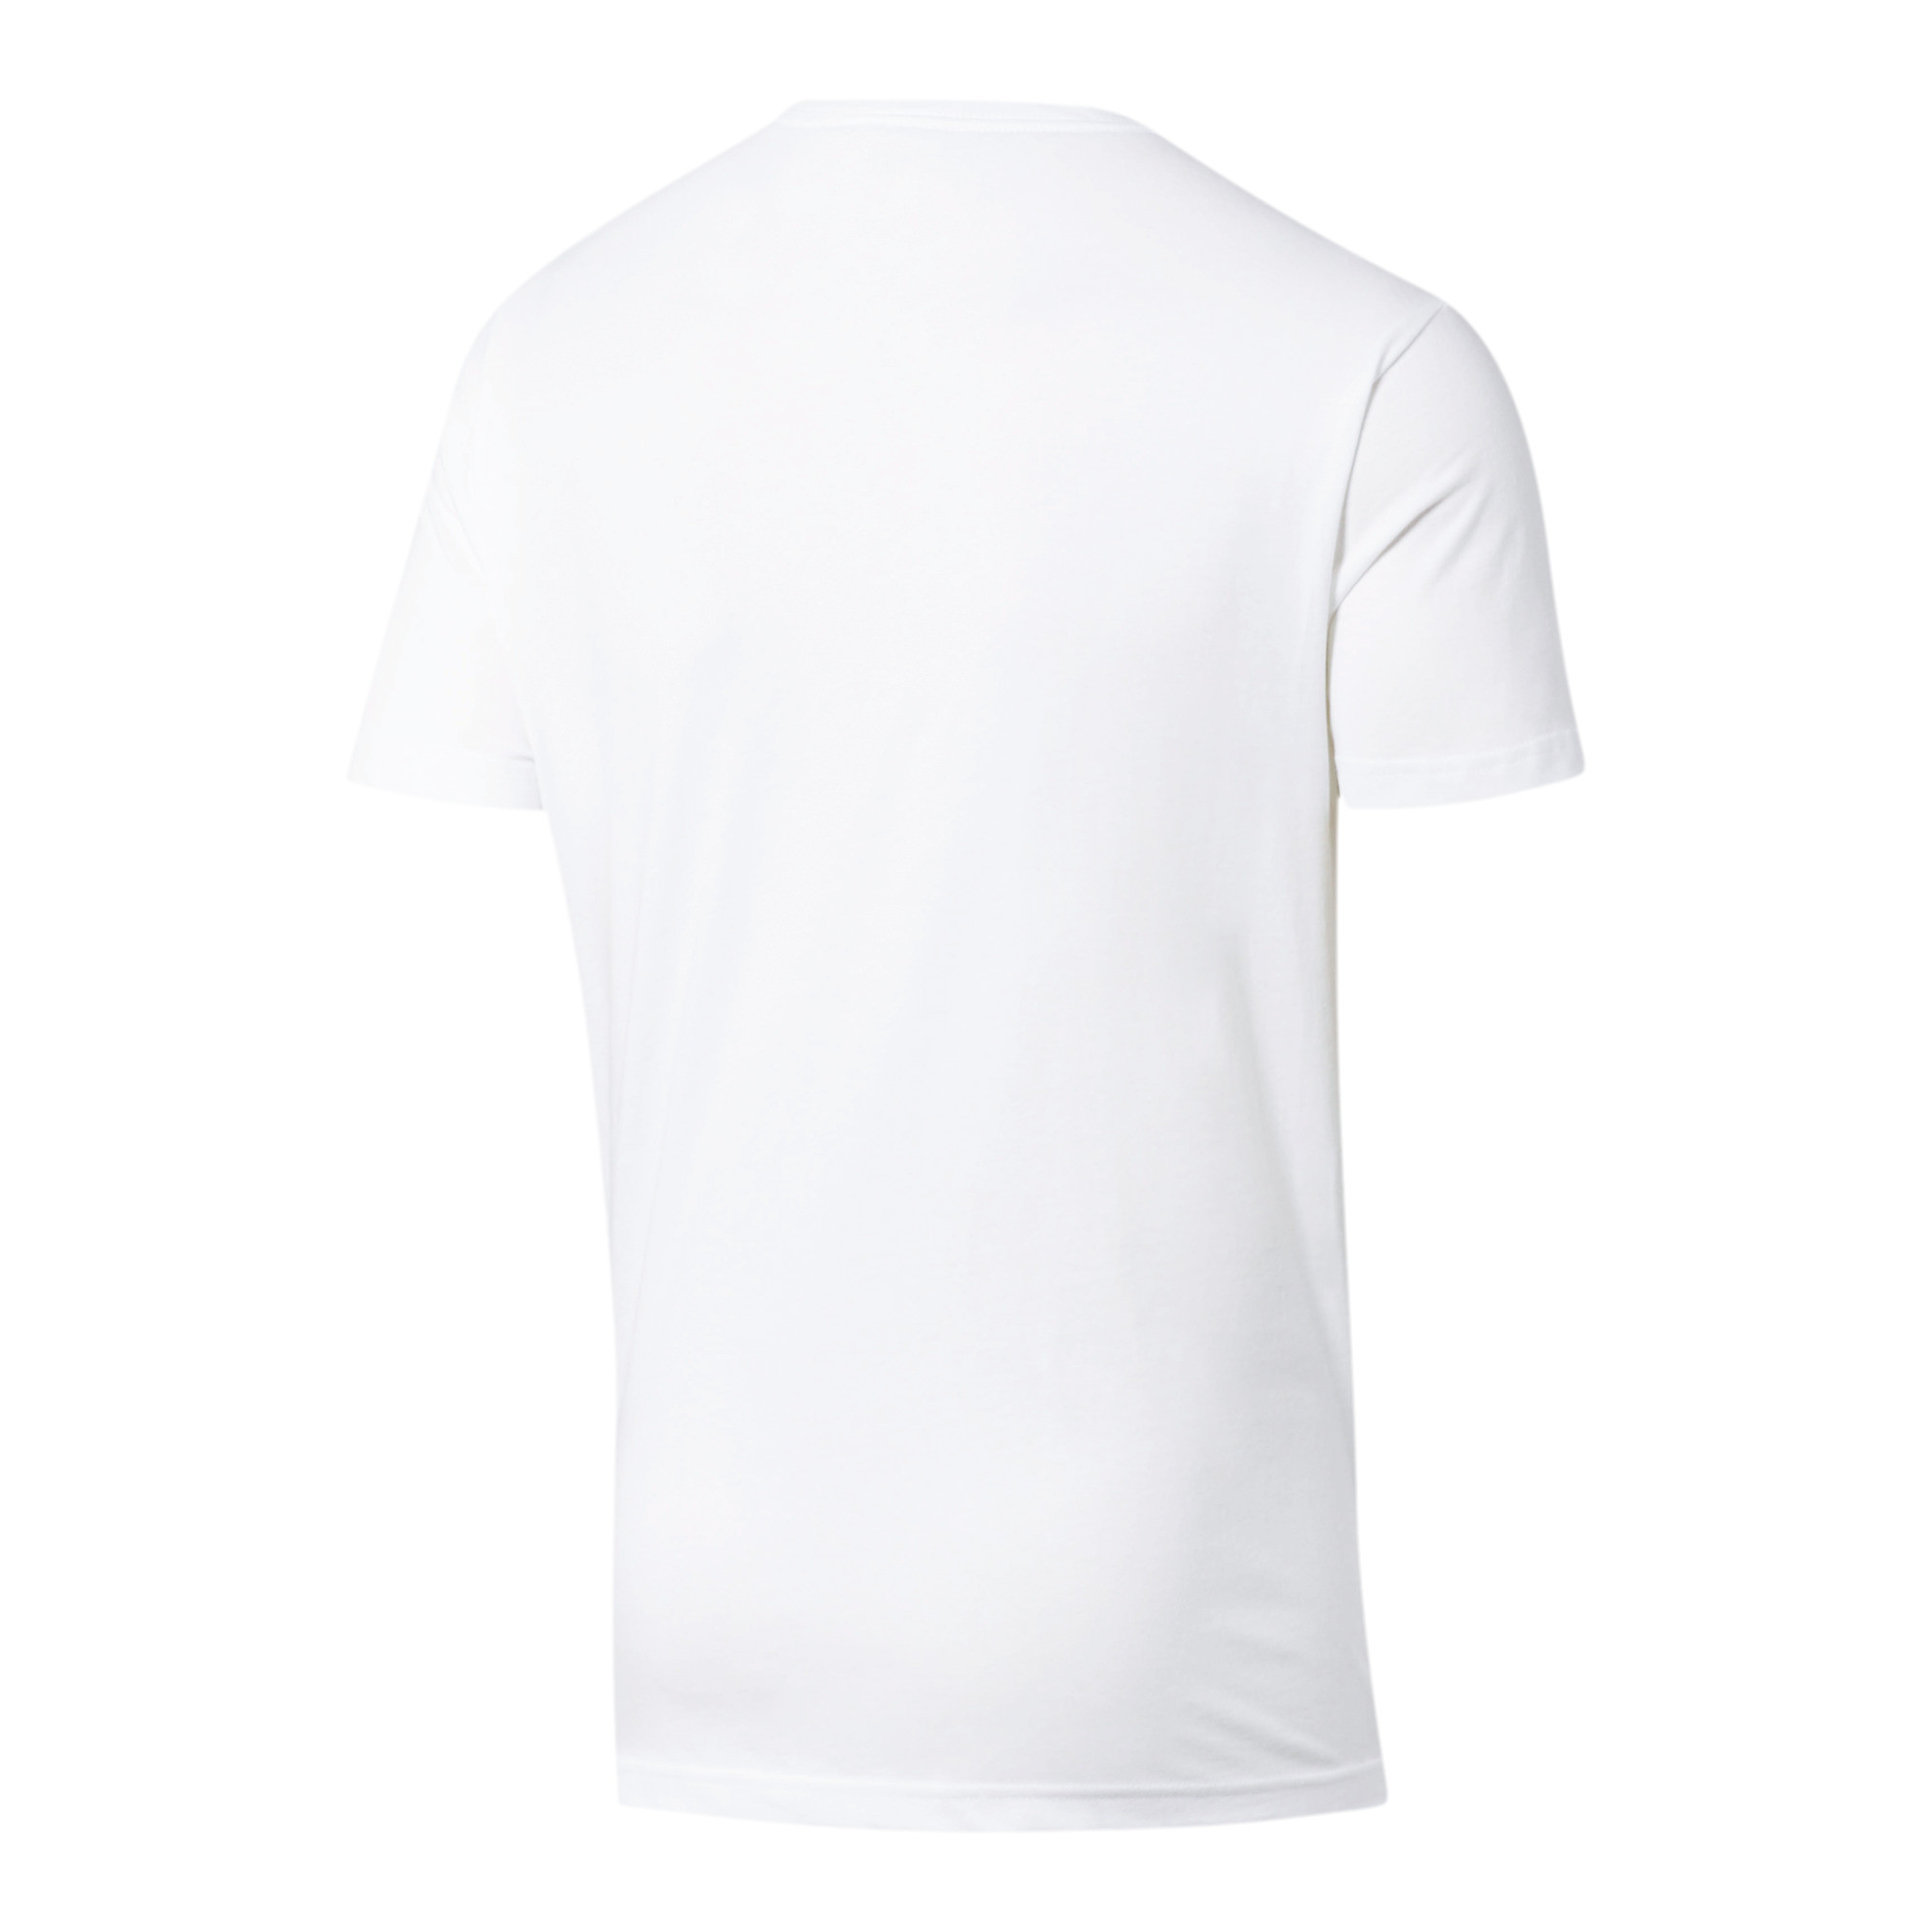 PUMA-Essentials-Men-039-s-V-Neck-Tee-Men-Tee-Basics thumbnail 10